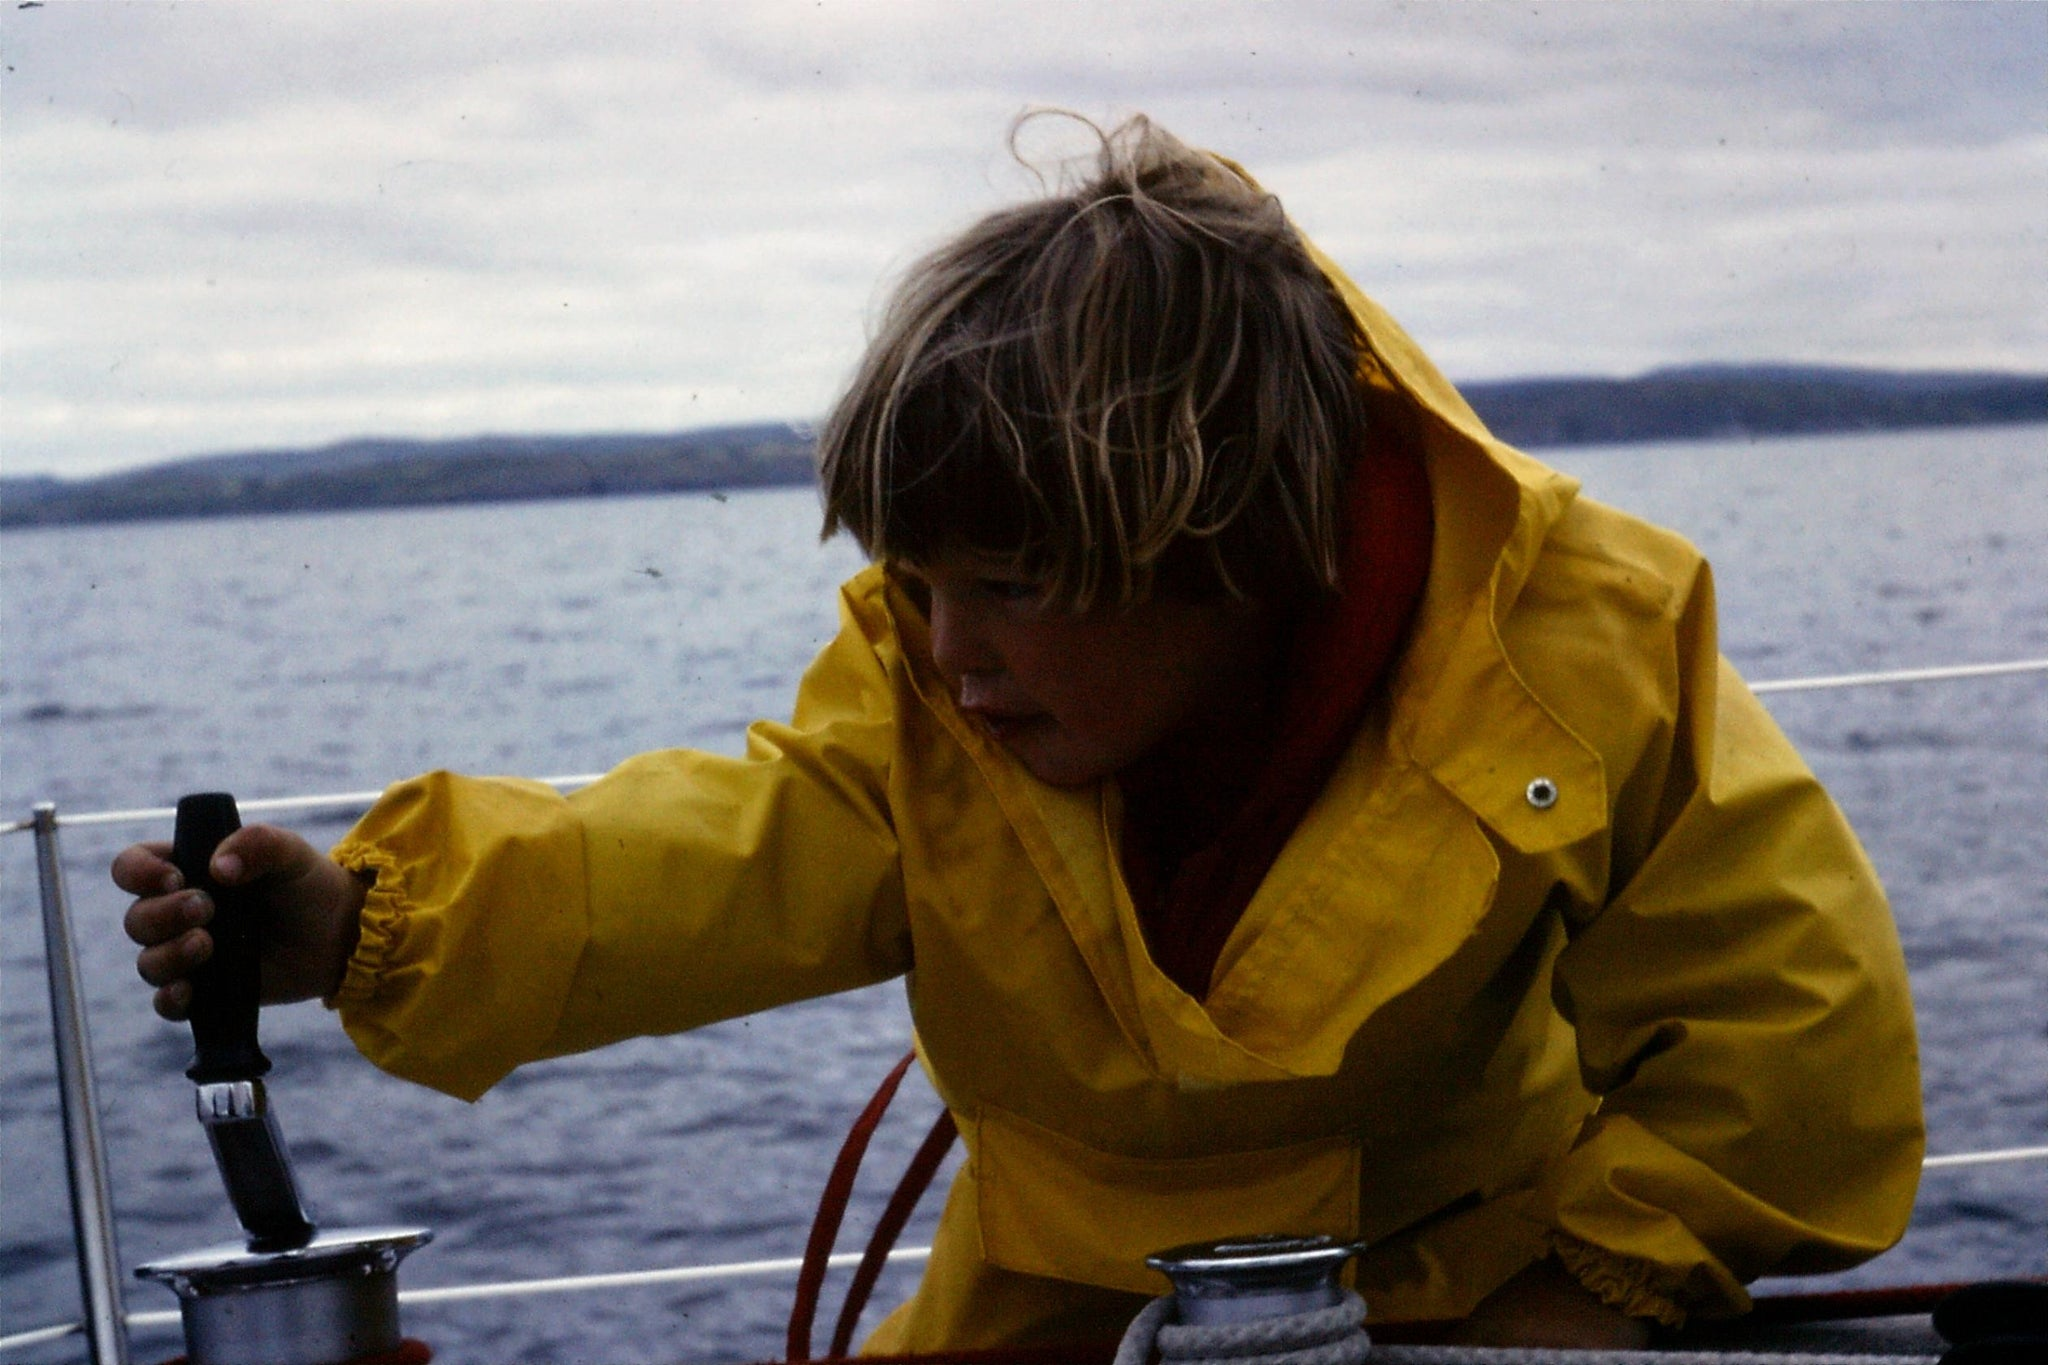 child in yellow rain gear on sailing boat